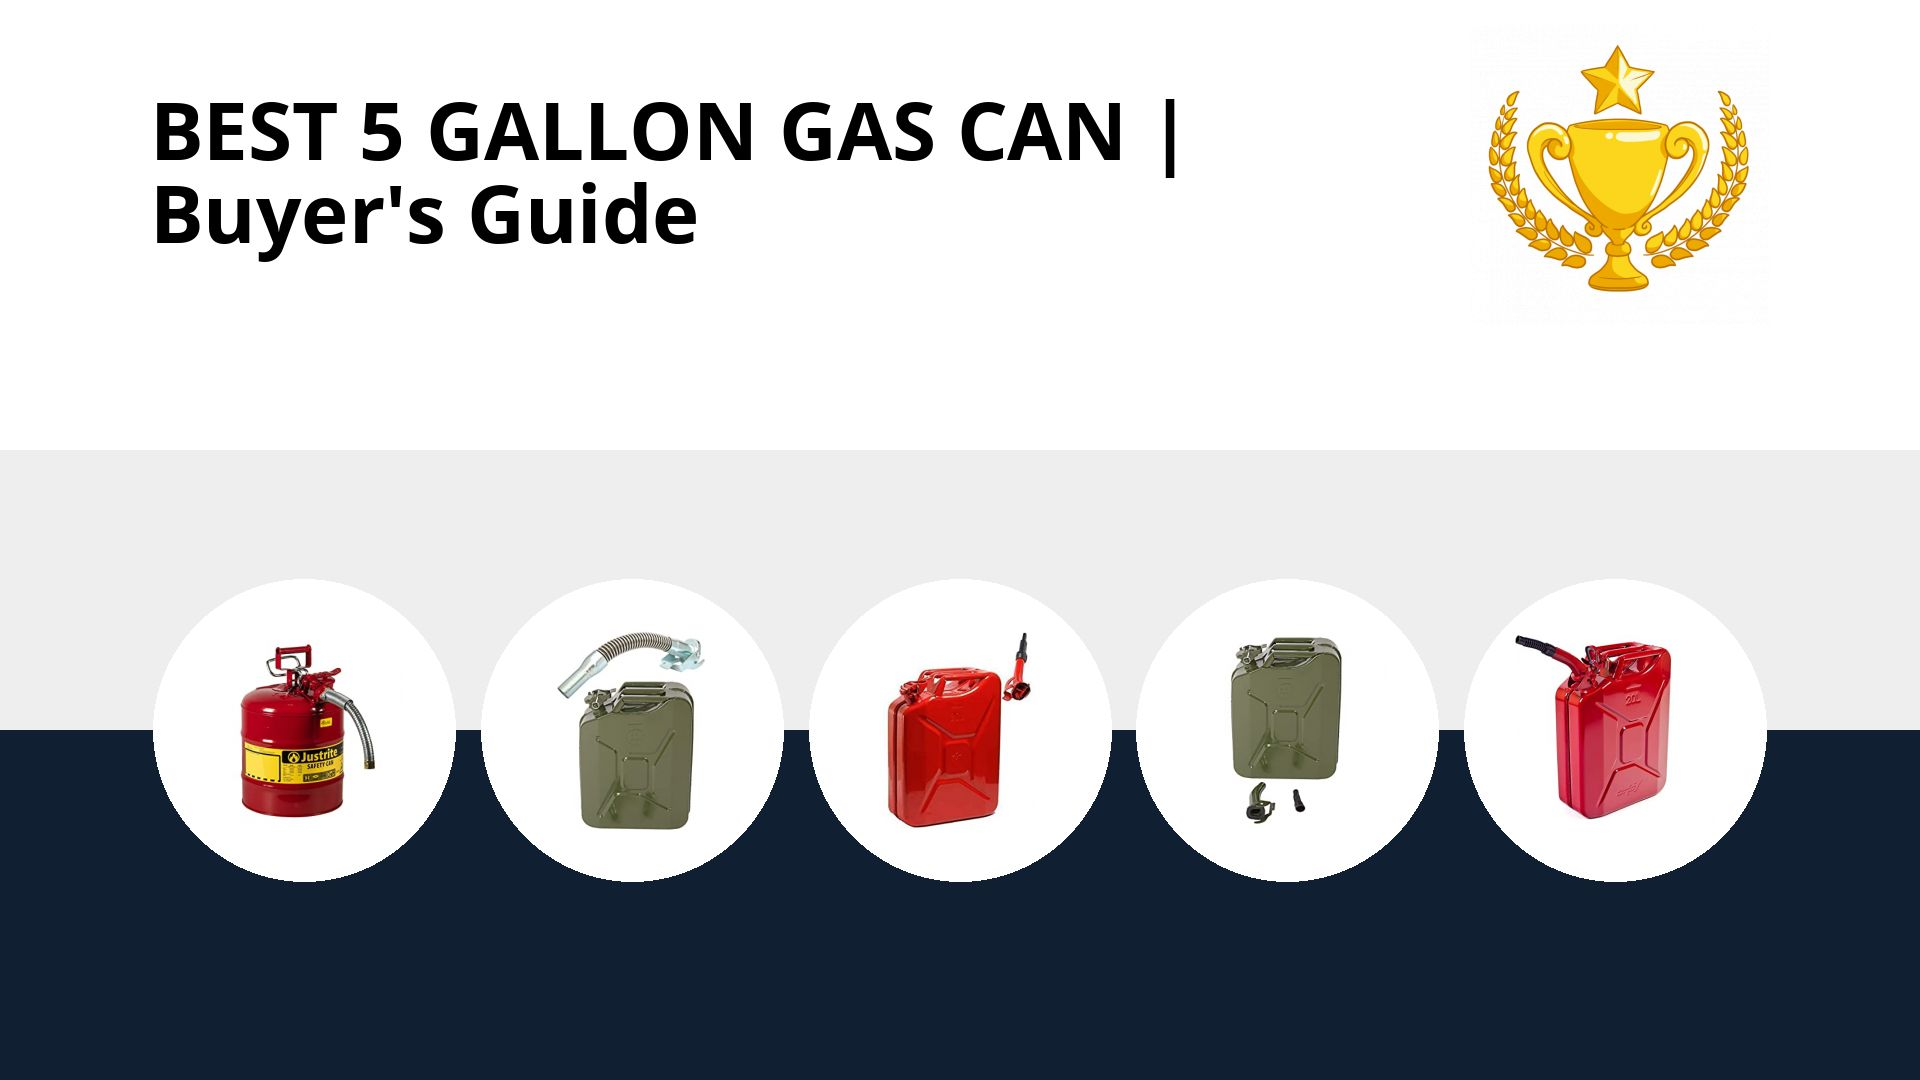 Best 5 Gallon Gas Can: image